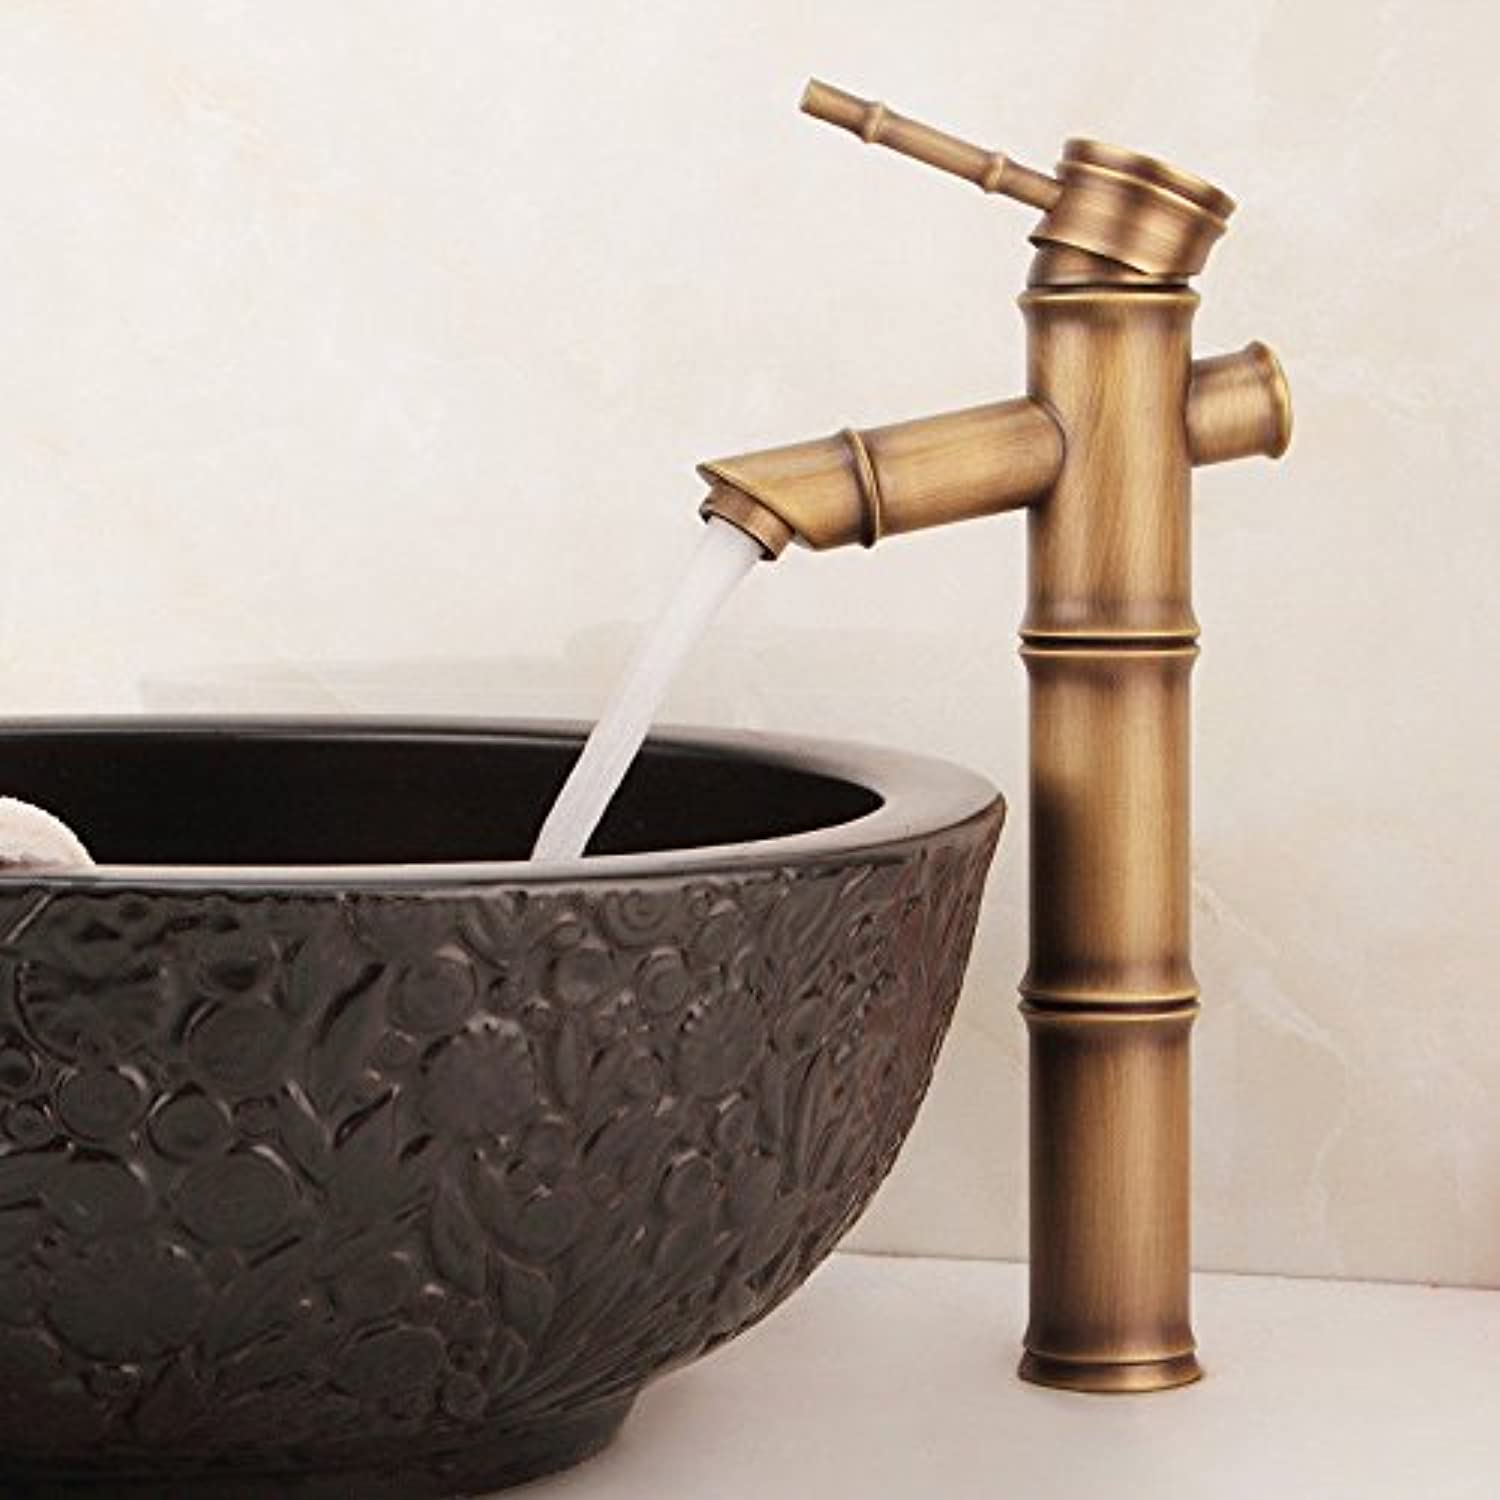 Lalaky Taps Faucet Kitchen Mixer Sink Waterfall Bathroom Mixer Basin Mixer Tap for Kitchen Bathroom and Washroom Antique Copper Single Handle Hot and Cold Single Hole Drawing